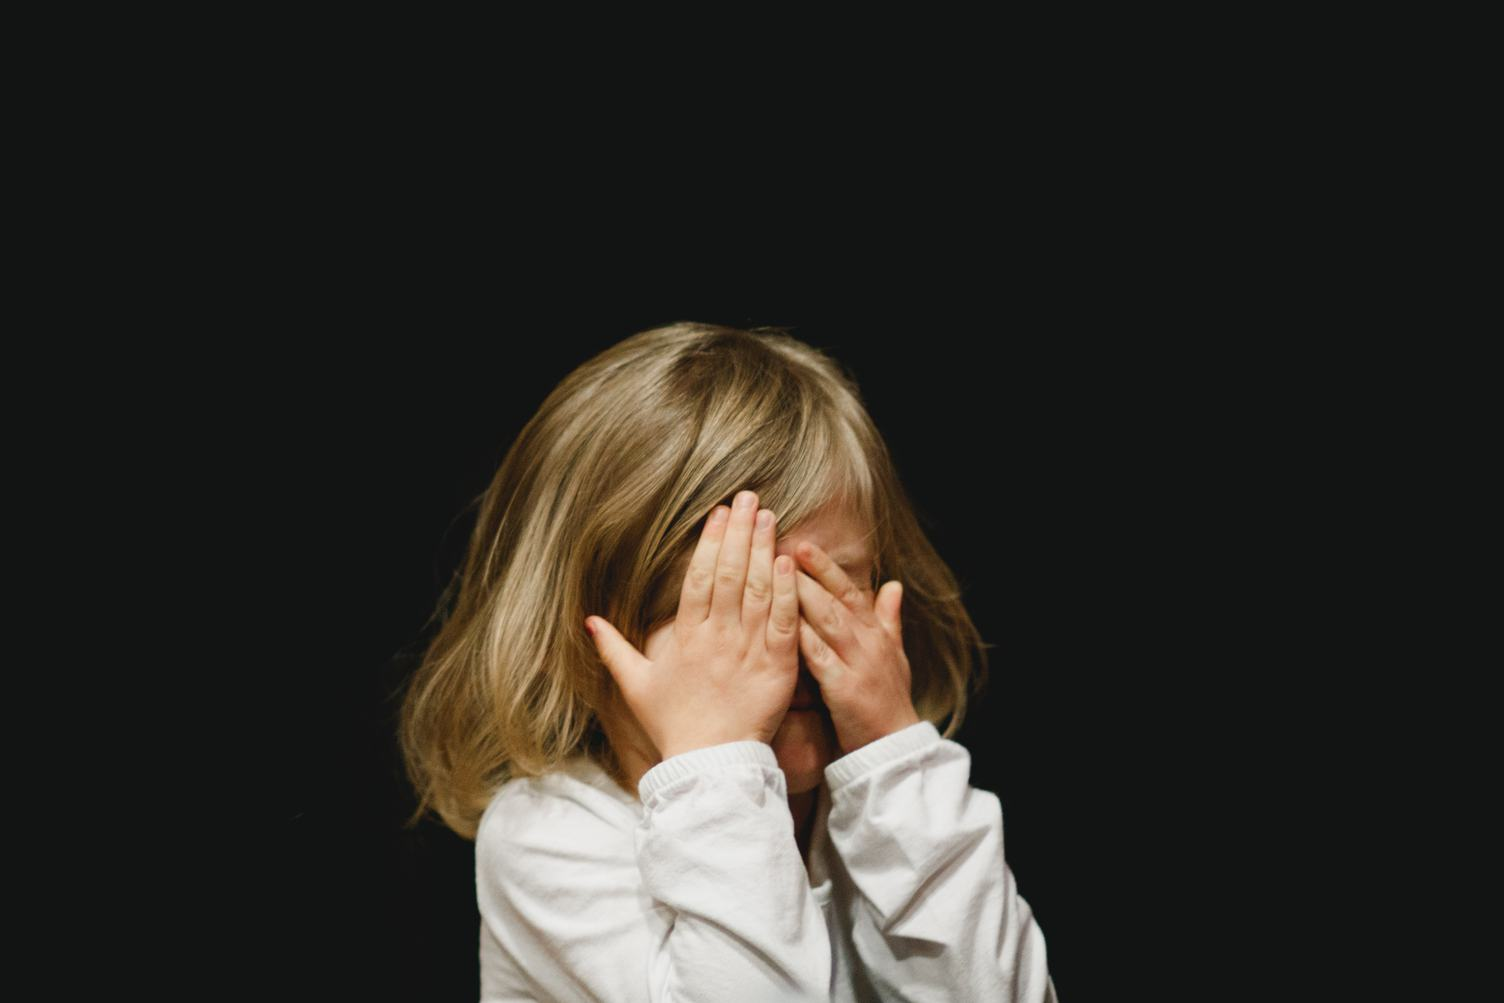 Little Girl Covering Her Face with her Hands on Black Background